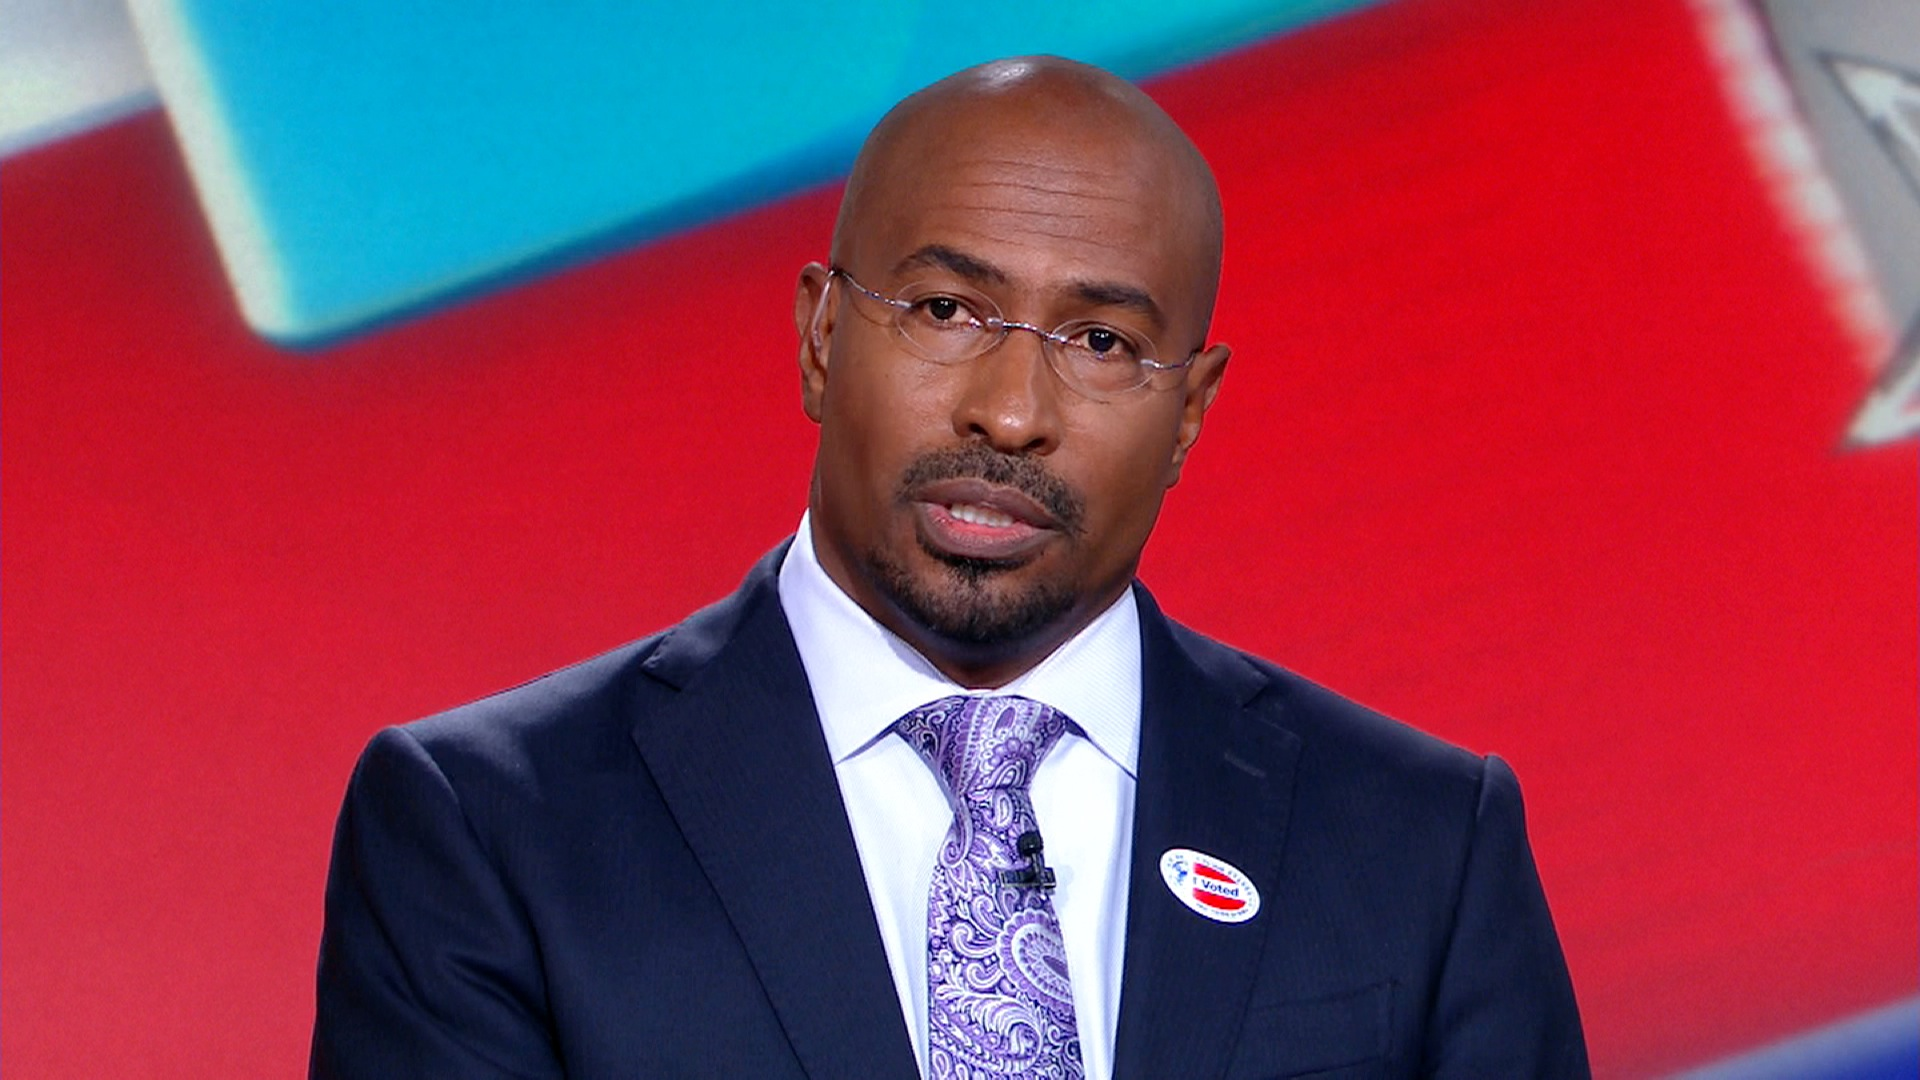 CNN's Van Jones: Democratic Debate Was 'dispiriting,' Party Can't Defeat Trump